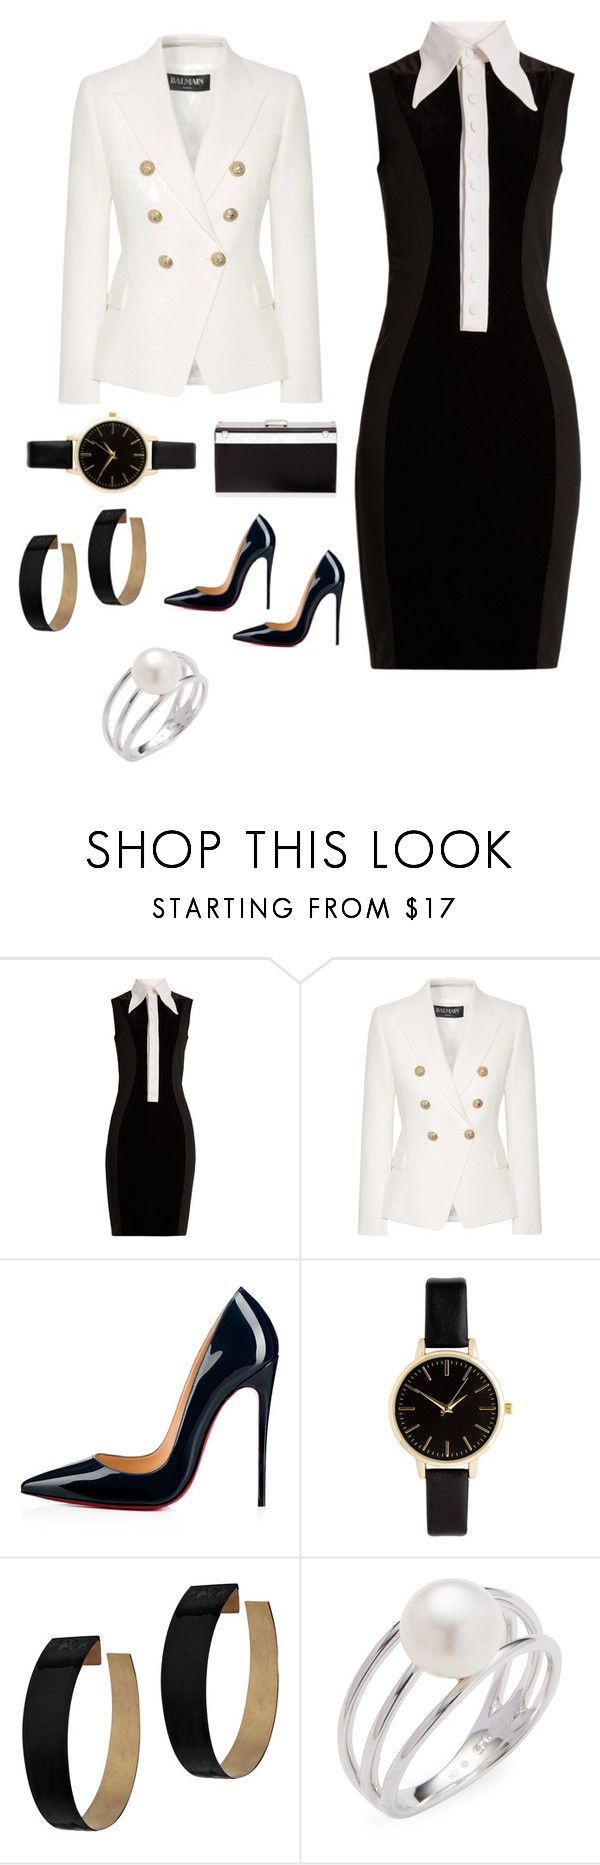 """Outfit entrevista laboral formal"" by olga-pazgarcia on Polyvore featuring moda, Givenchy, Balmain, Christian Louboutin, Zimmermann, Baggins y Giuseppe Zanotti"